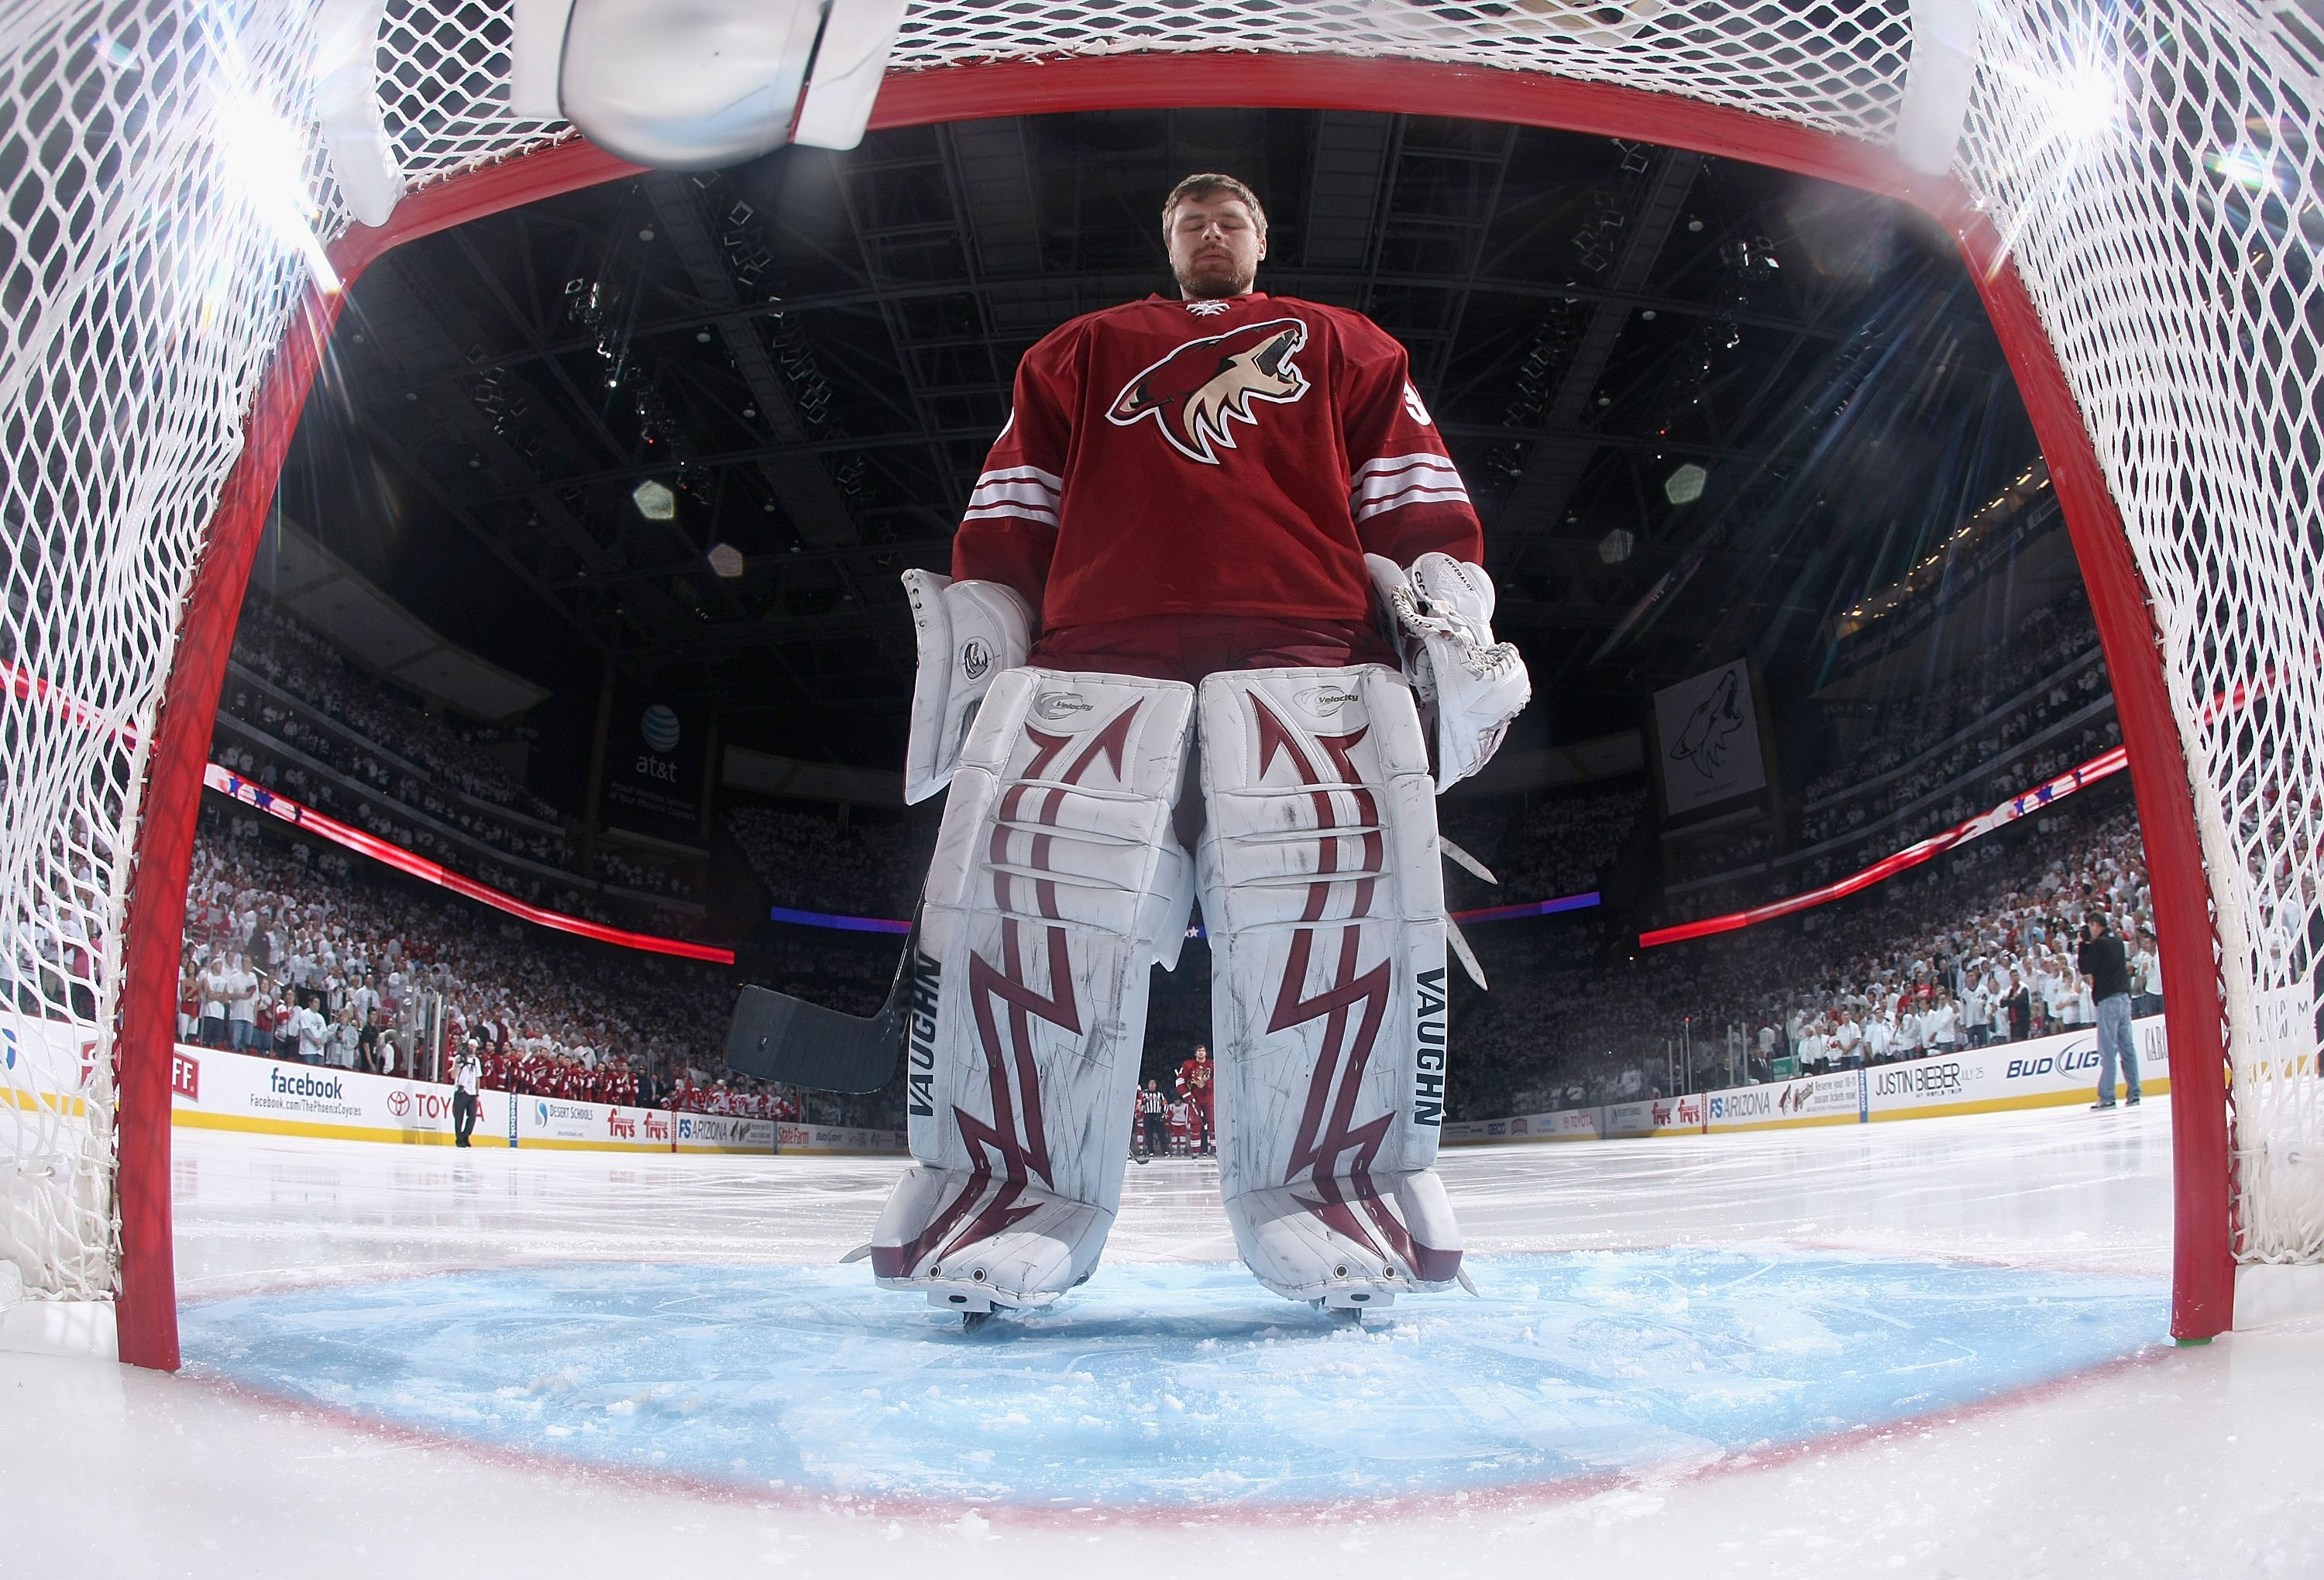 GLENDALE, AZ - APRIL 27:  Goaltender Ilya Bryzgalov #30 of the Phoenix Coyotes before Game Seven of the Western Conference Quarterfinals against the Detroit Red Wings during the 2010 NHL Stanley Cup Playoffs at Jobing.com Arena on April 27, 2010 in Glenda